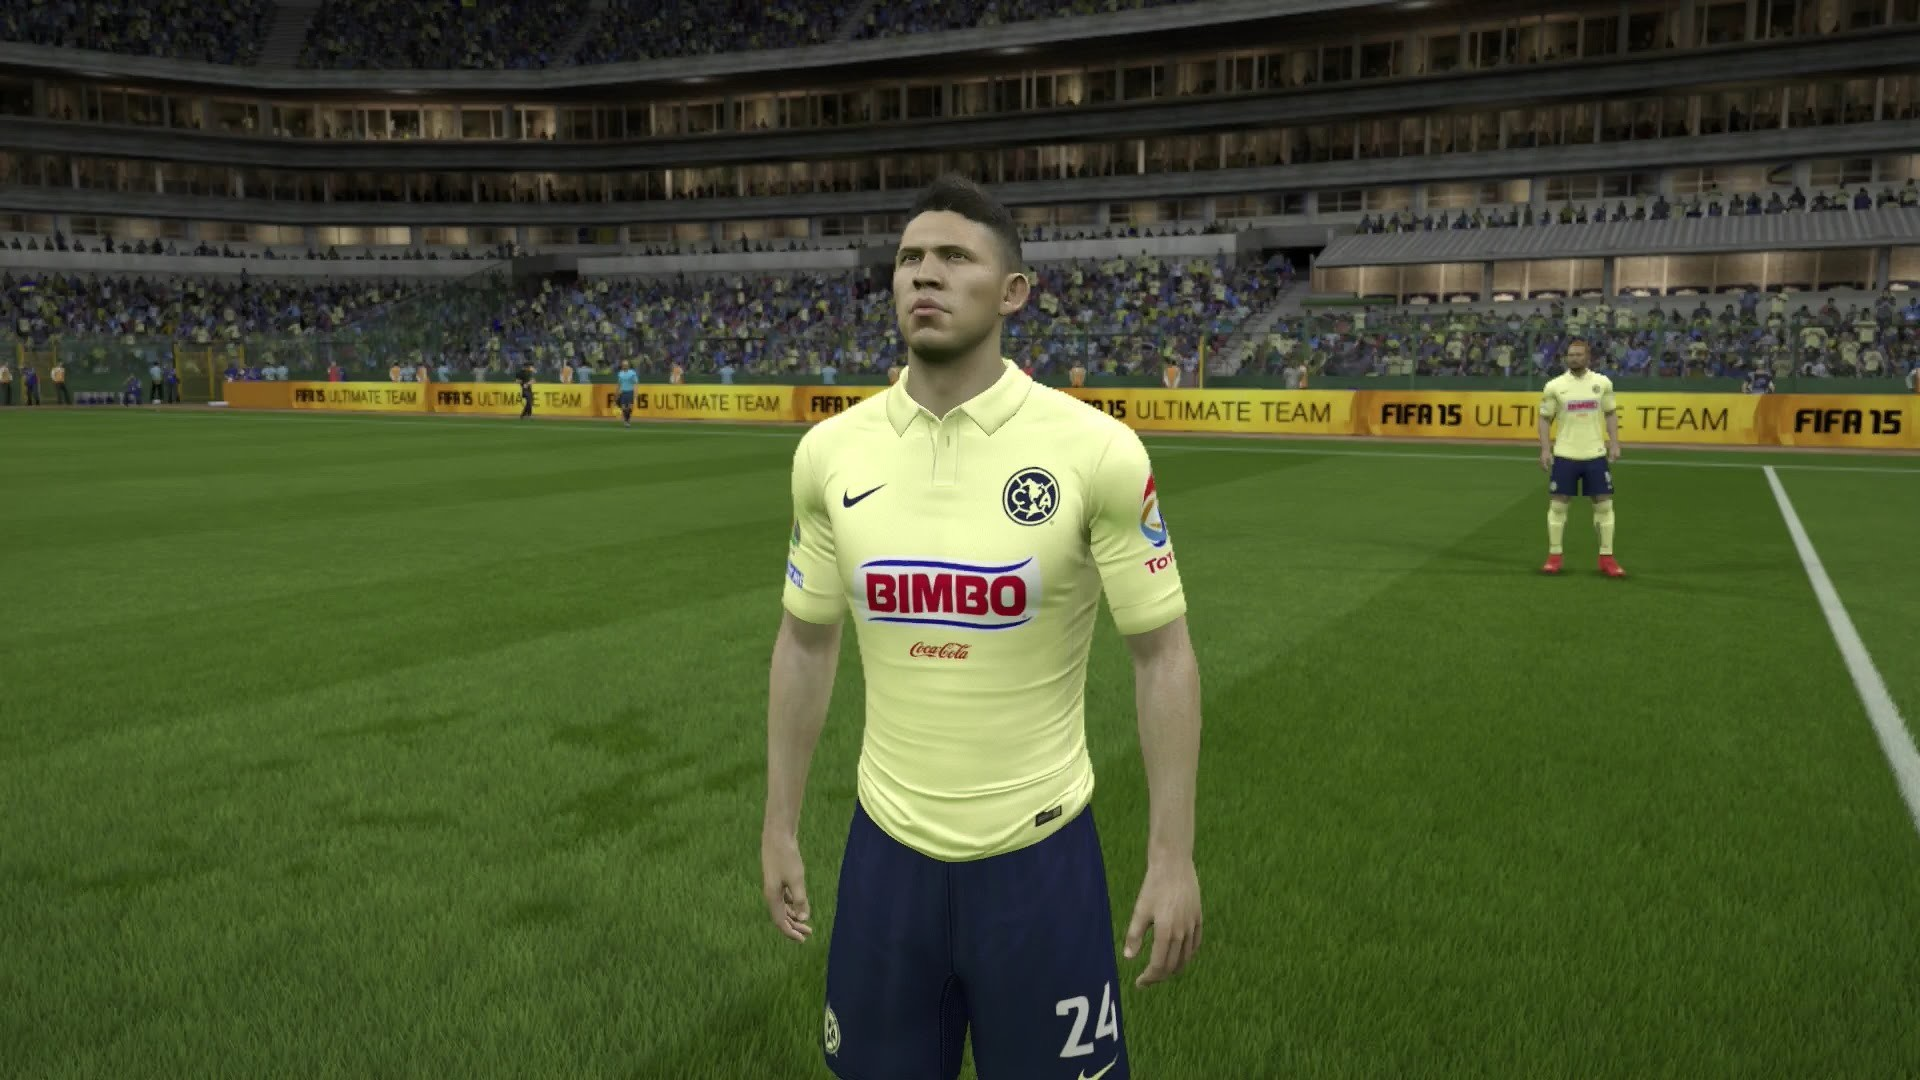 FIFA 15 РClub Am̩rica Player Faces РNext-Gen Gameplay 1080p (PS4/Xbox  One) РYouTube